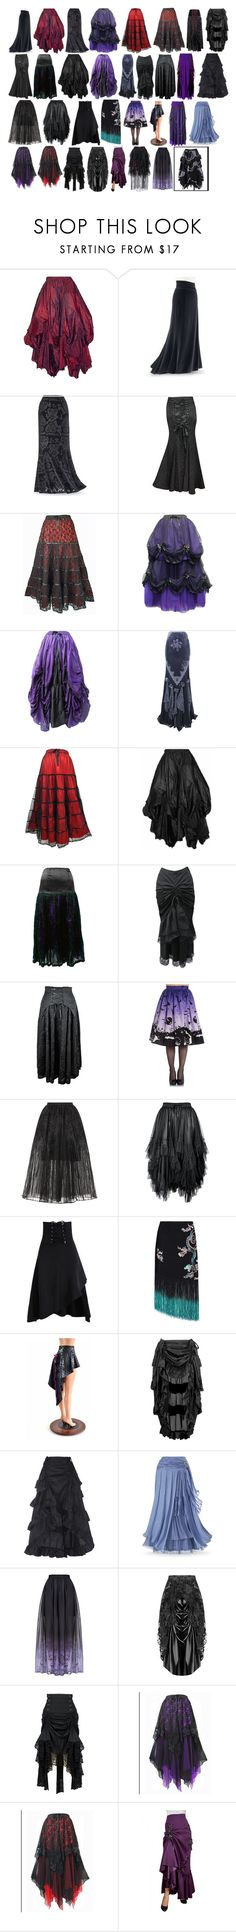 """Lanya's Long Skirts #2"" by switchback13 on Polyvore featuring Hell Bunny, Elie Saab, RIXO London and California Costumes"